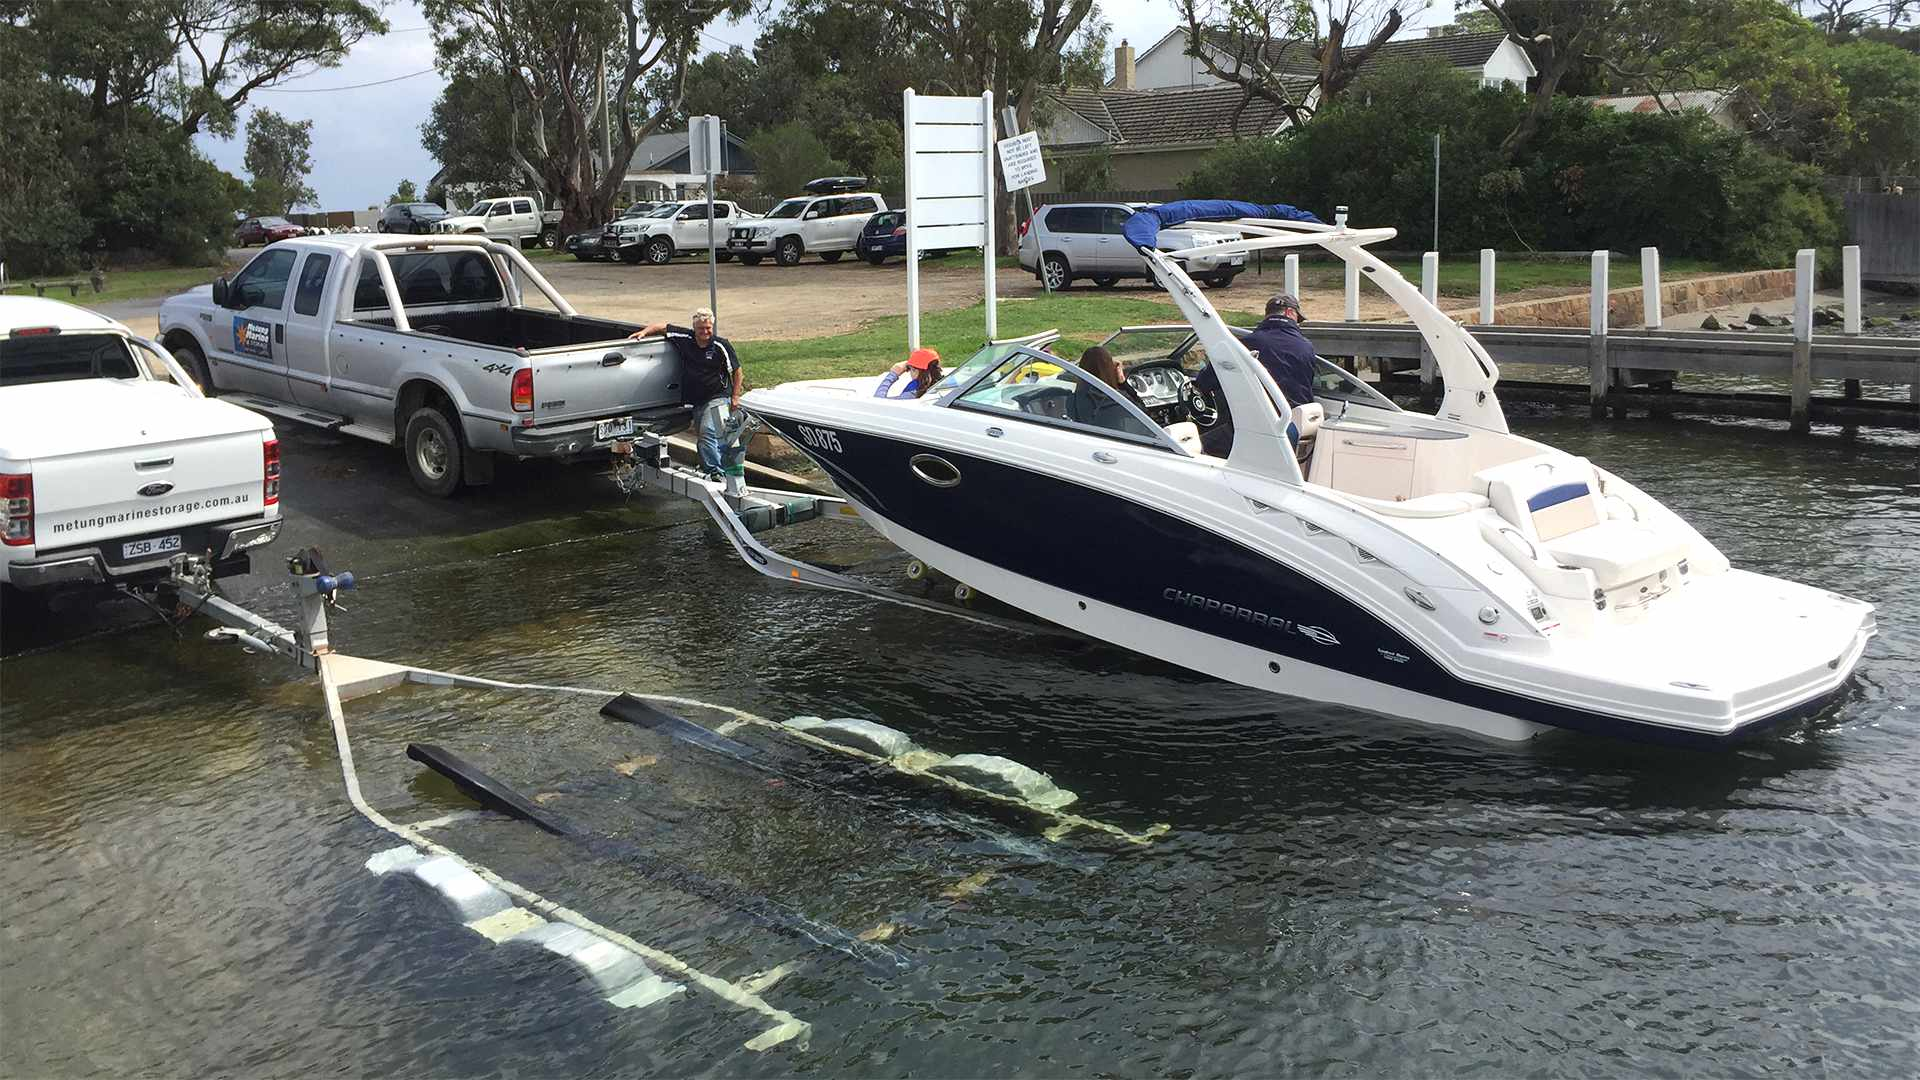 Boat launching and retrieval service